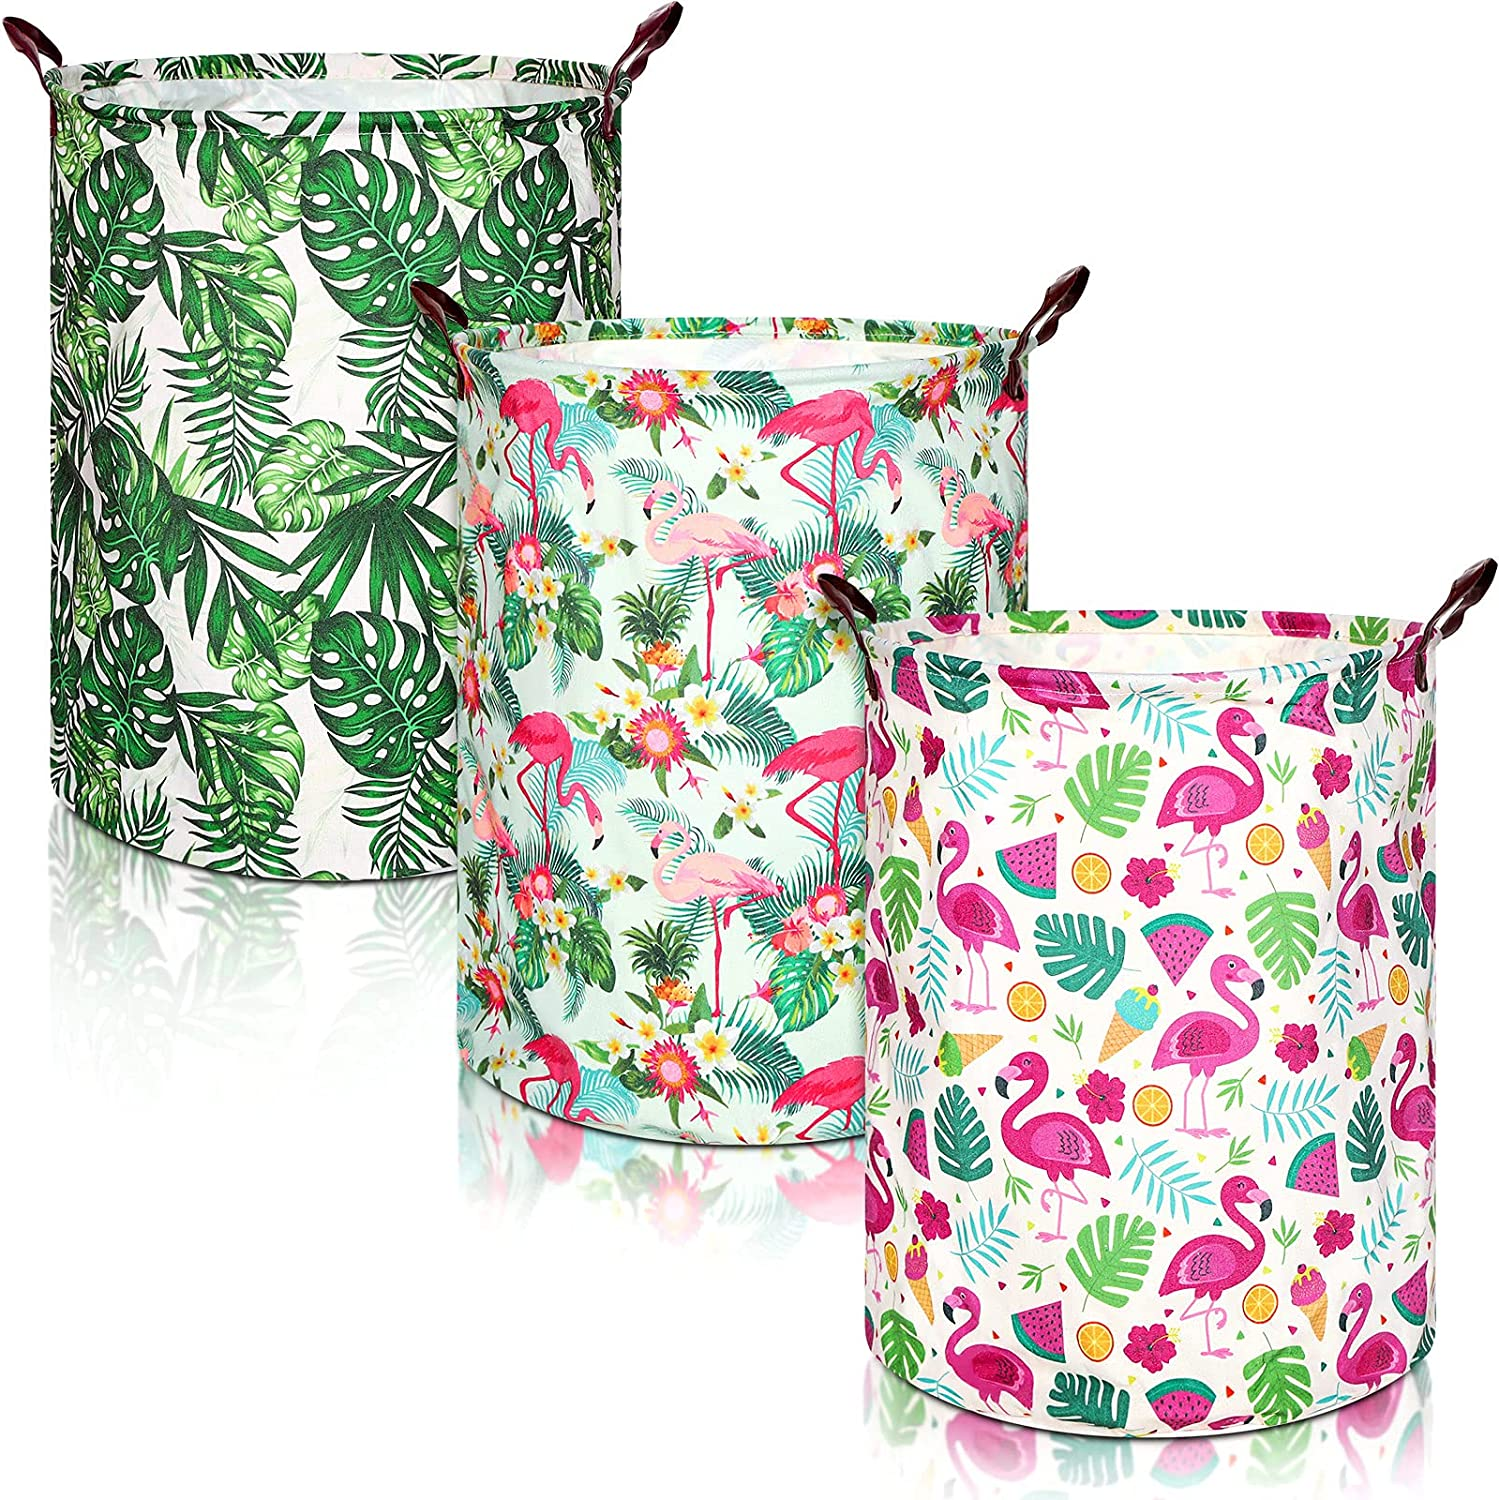 3 Pieces Large Flamingo Our shop most popular Leaf Popular brand in the world Basket Waterproof Foldable Storage